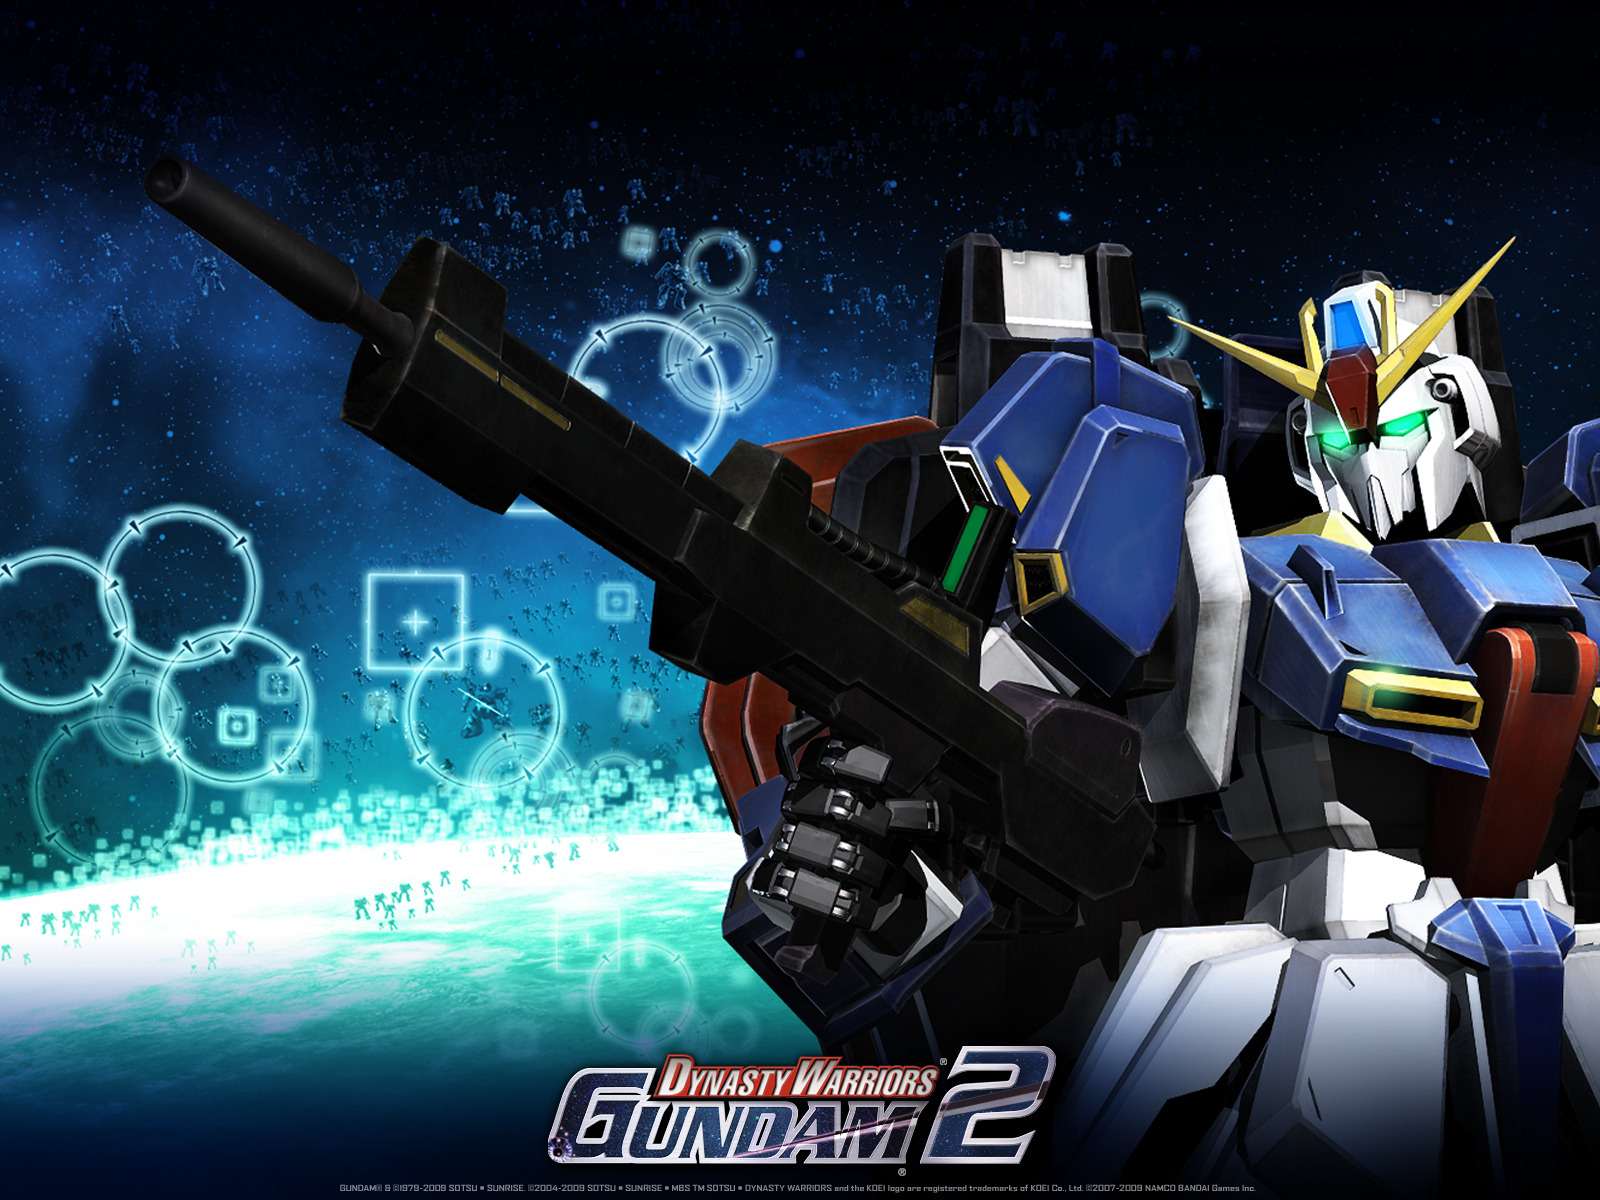 Gundam  Dynasty Warriors Gundam 2 Wallpaper Gallery   Best 1600x1200